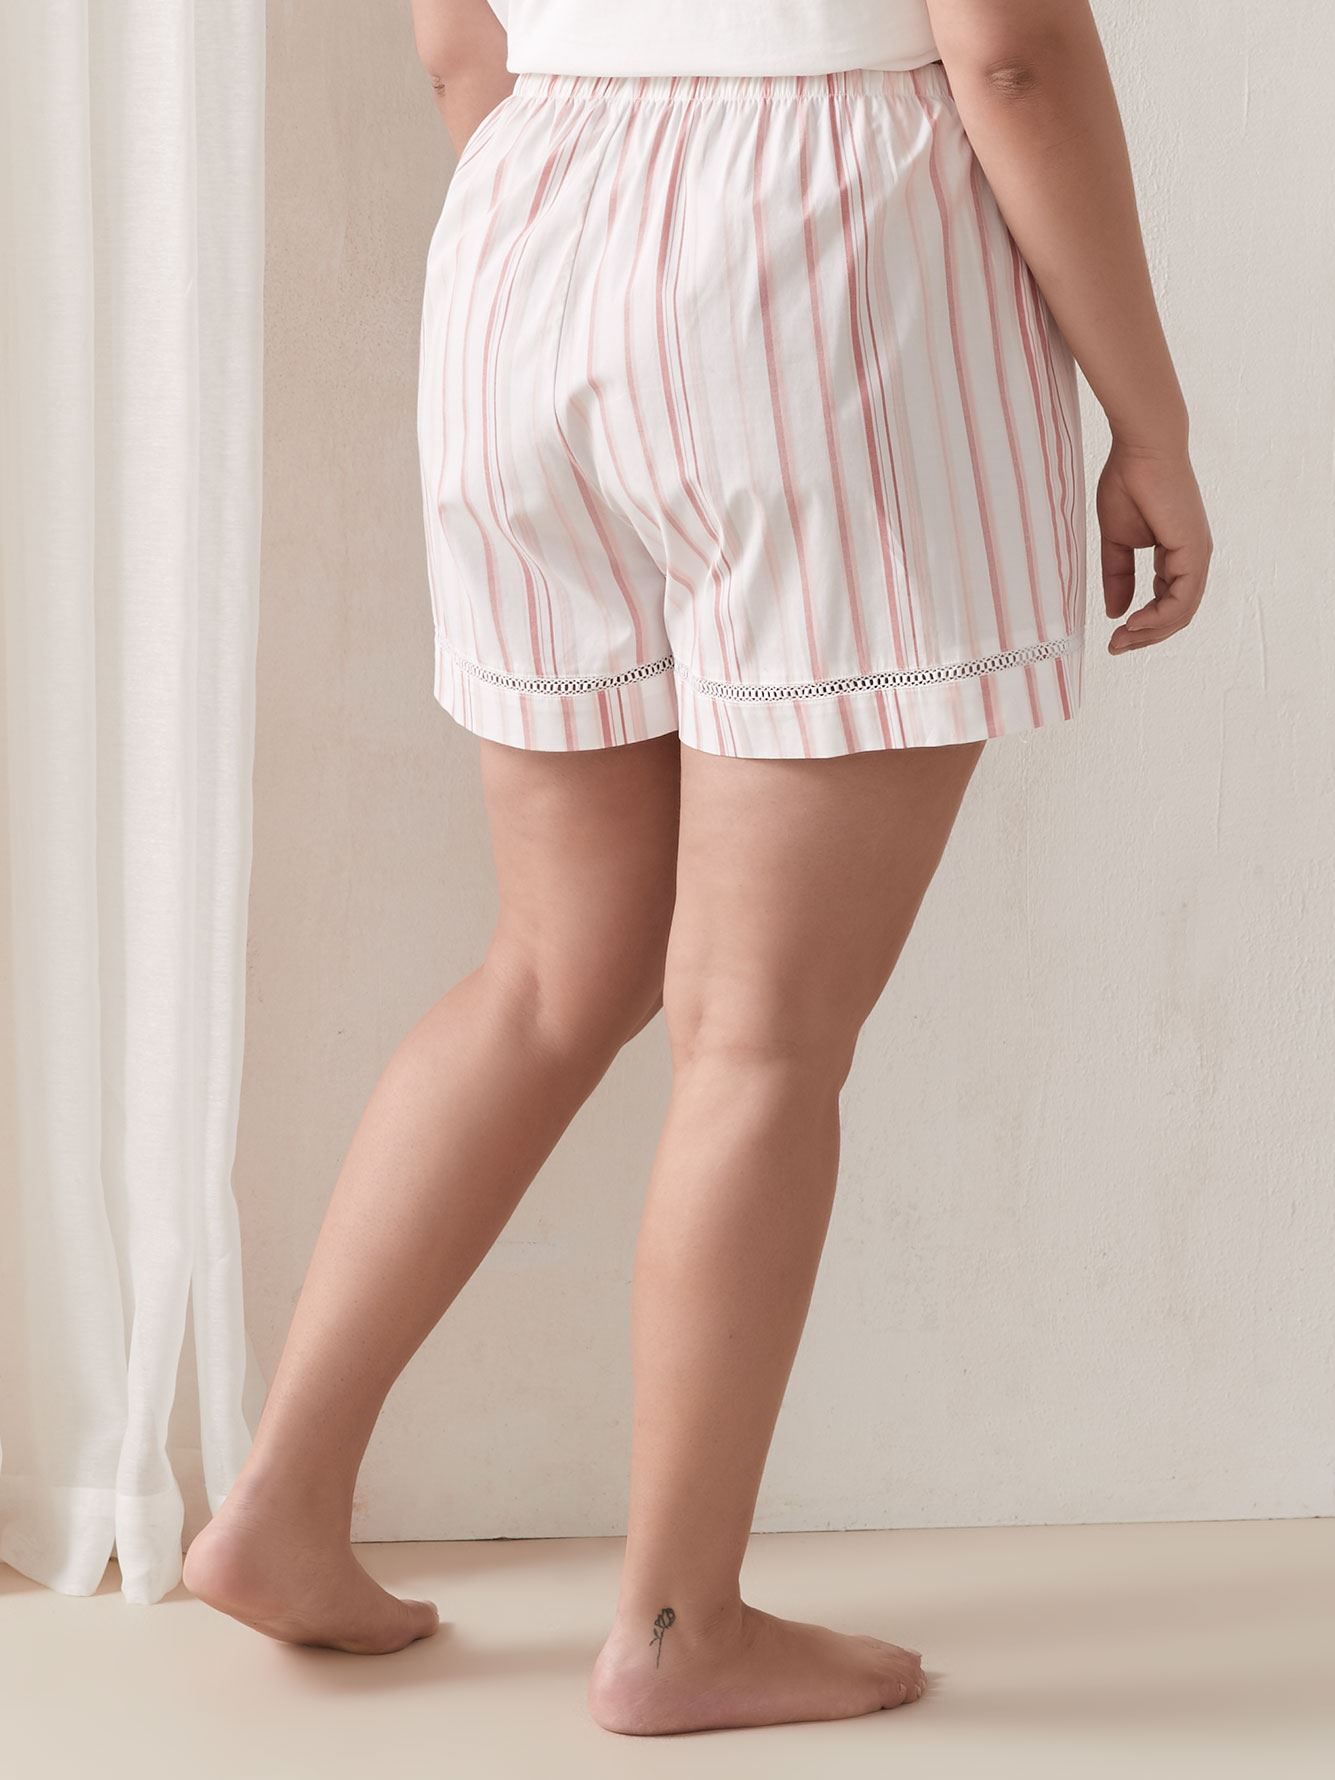 Striped Pajama Pull-On Short - Addition Elle